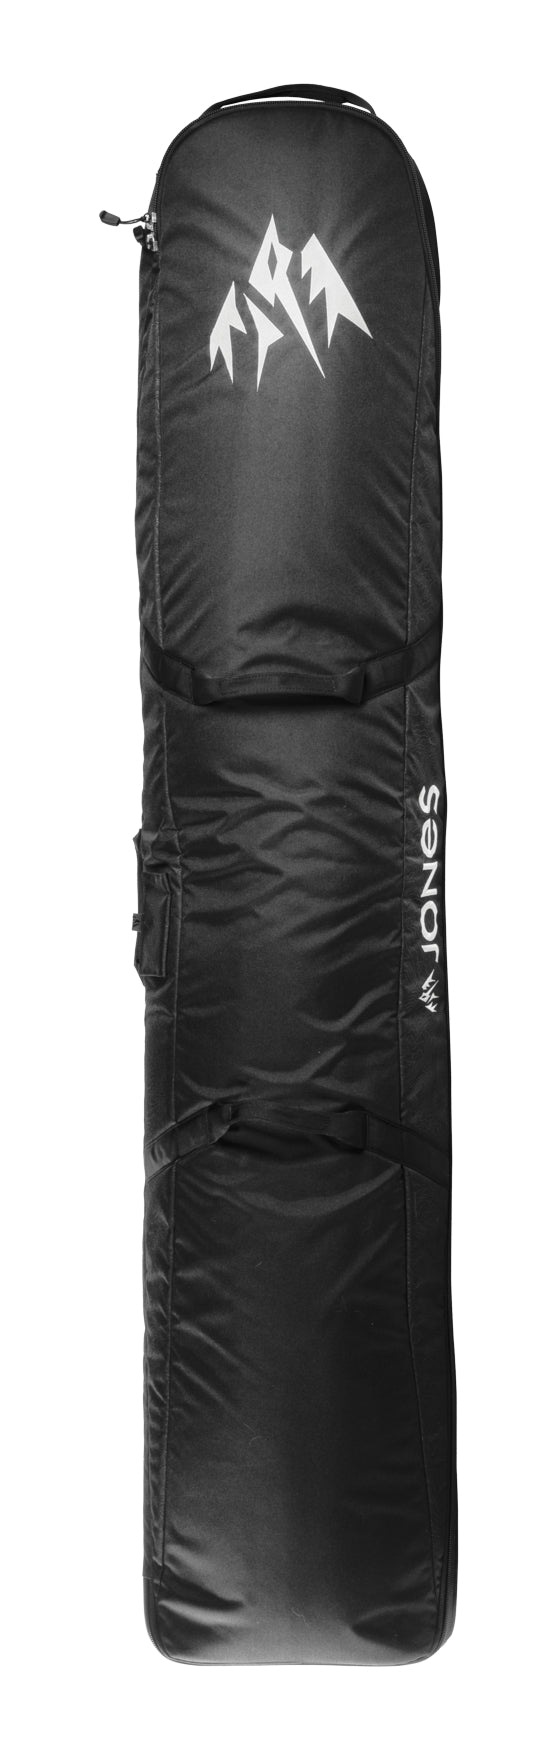 JONES ADVENTURE BOARD BAG 2020